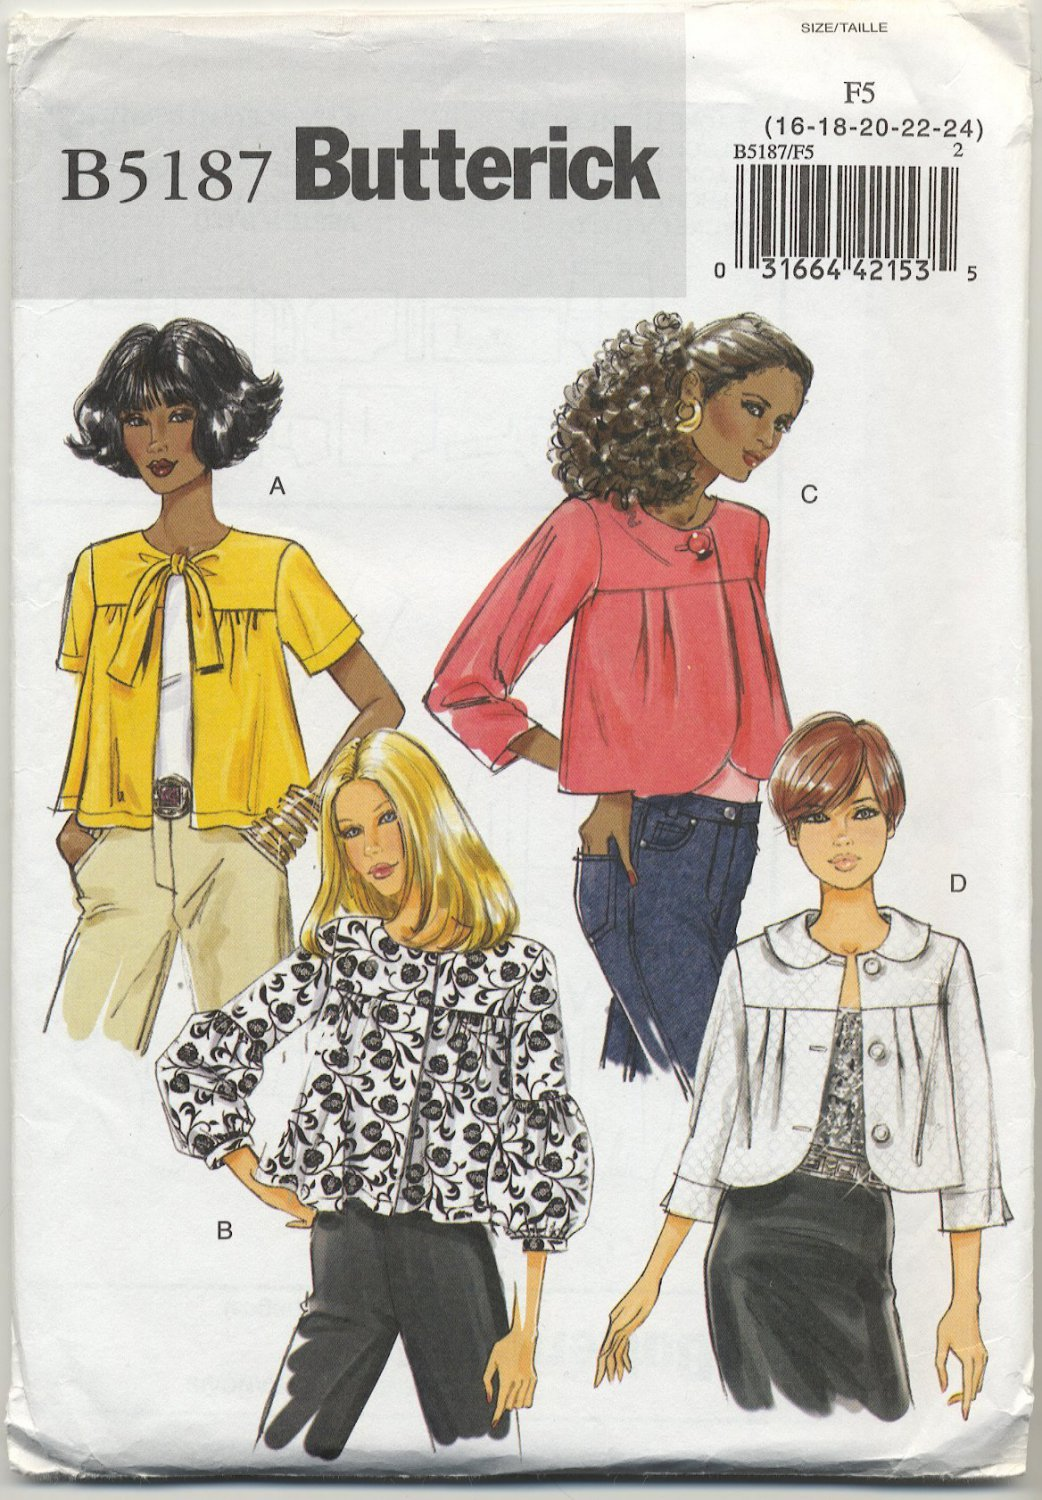 Butterick 5187 Jackets - Easy Sewing Pattern Misses' 16 18 20 22 24 Casual or Dressy Cropped Topper